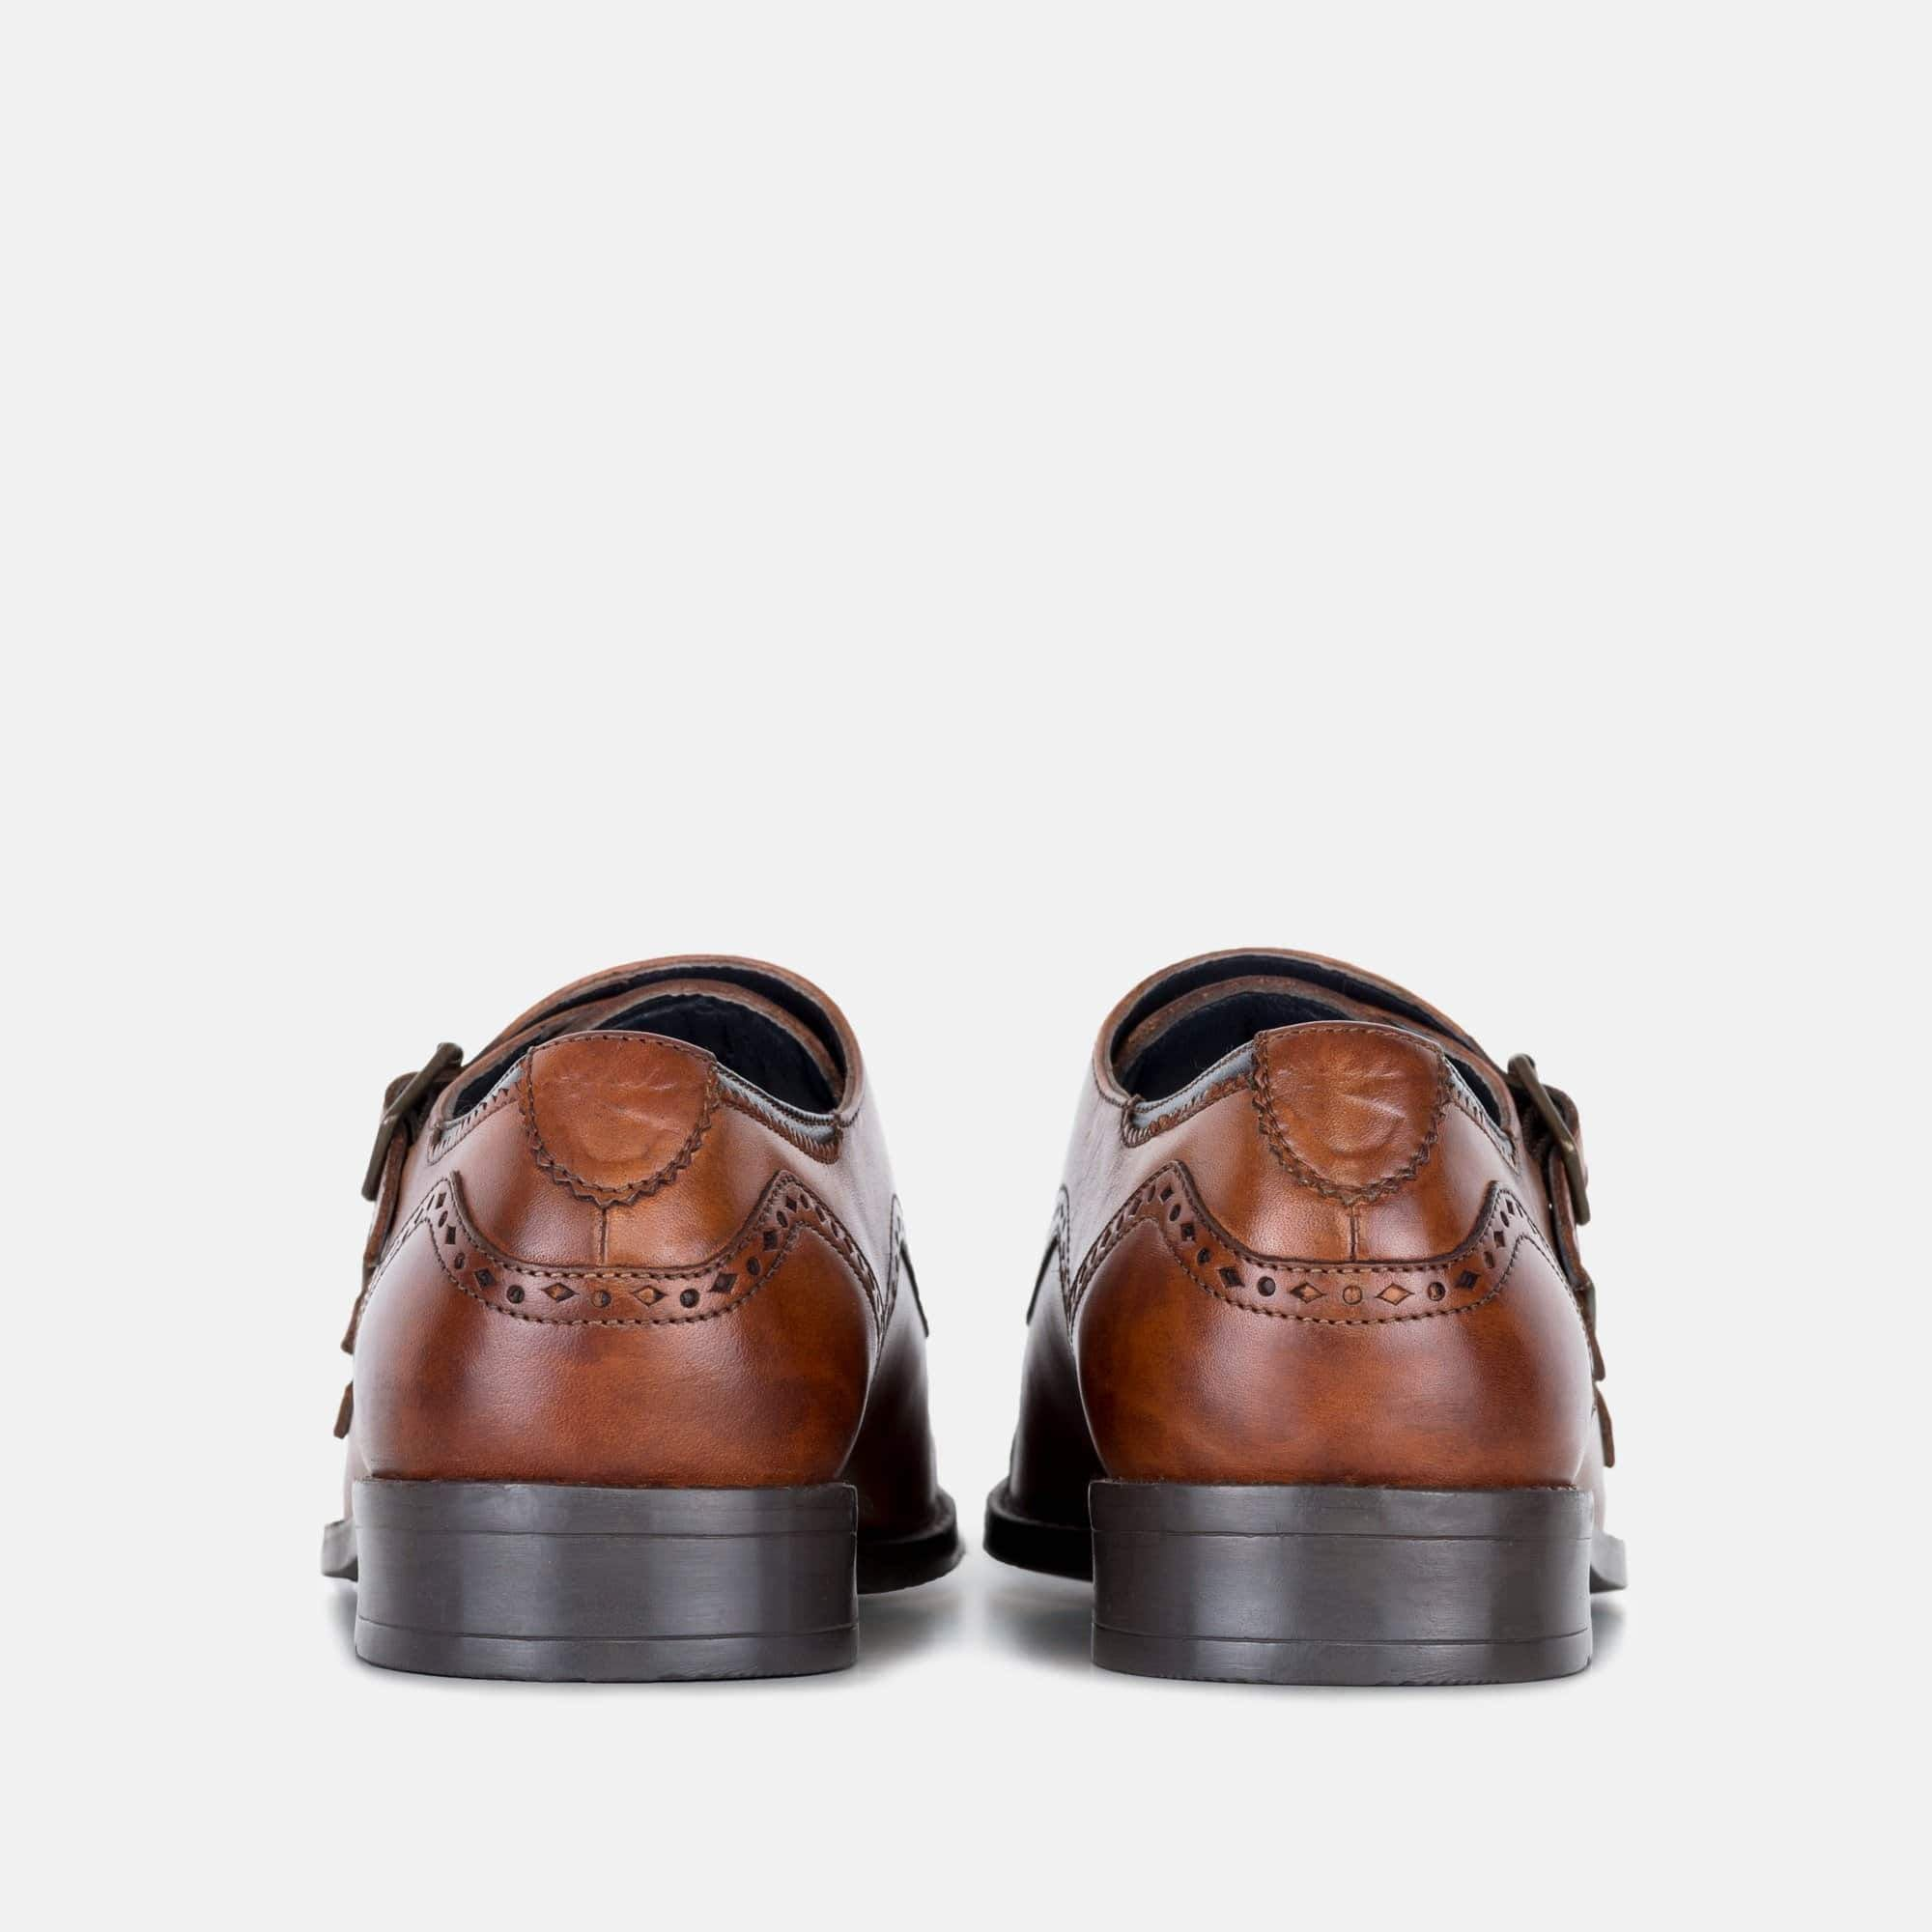 Goodwin Smith Footwear Kenwood Tan Triple Leather Monk Strap